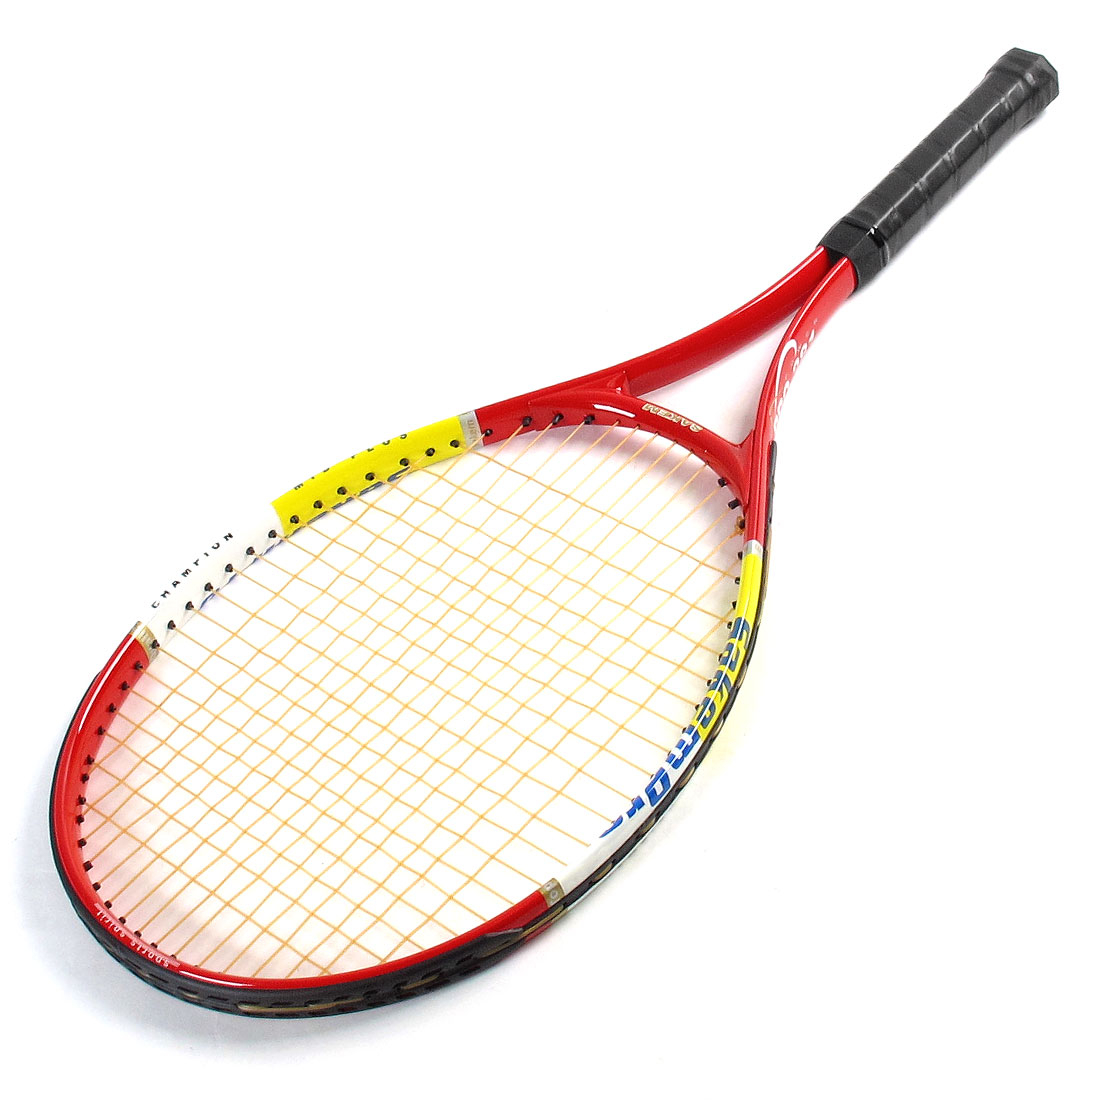 Red Black Yellow Aluminum Alloy 19 x 16 Tennis Racket Racquet